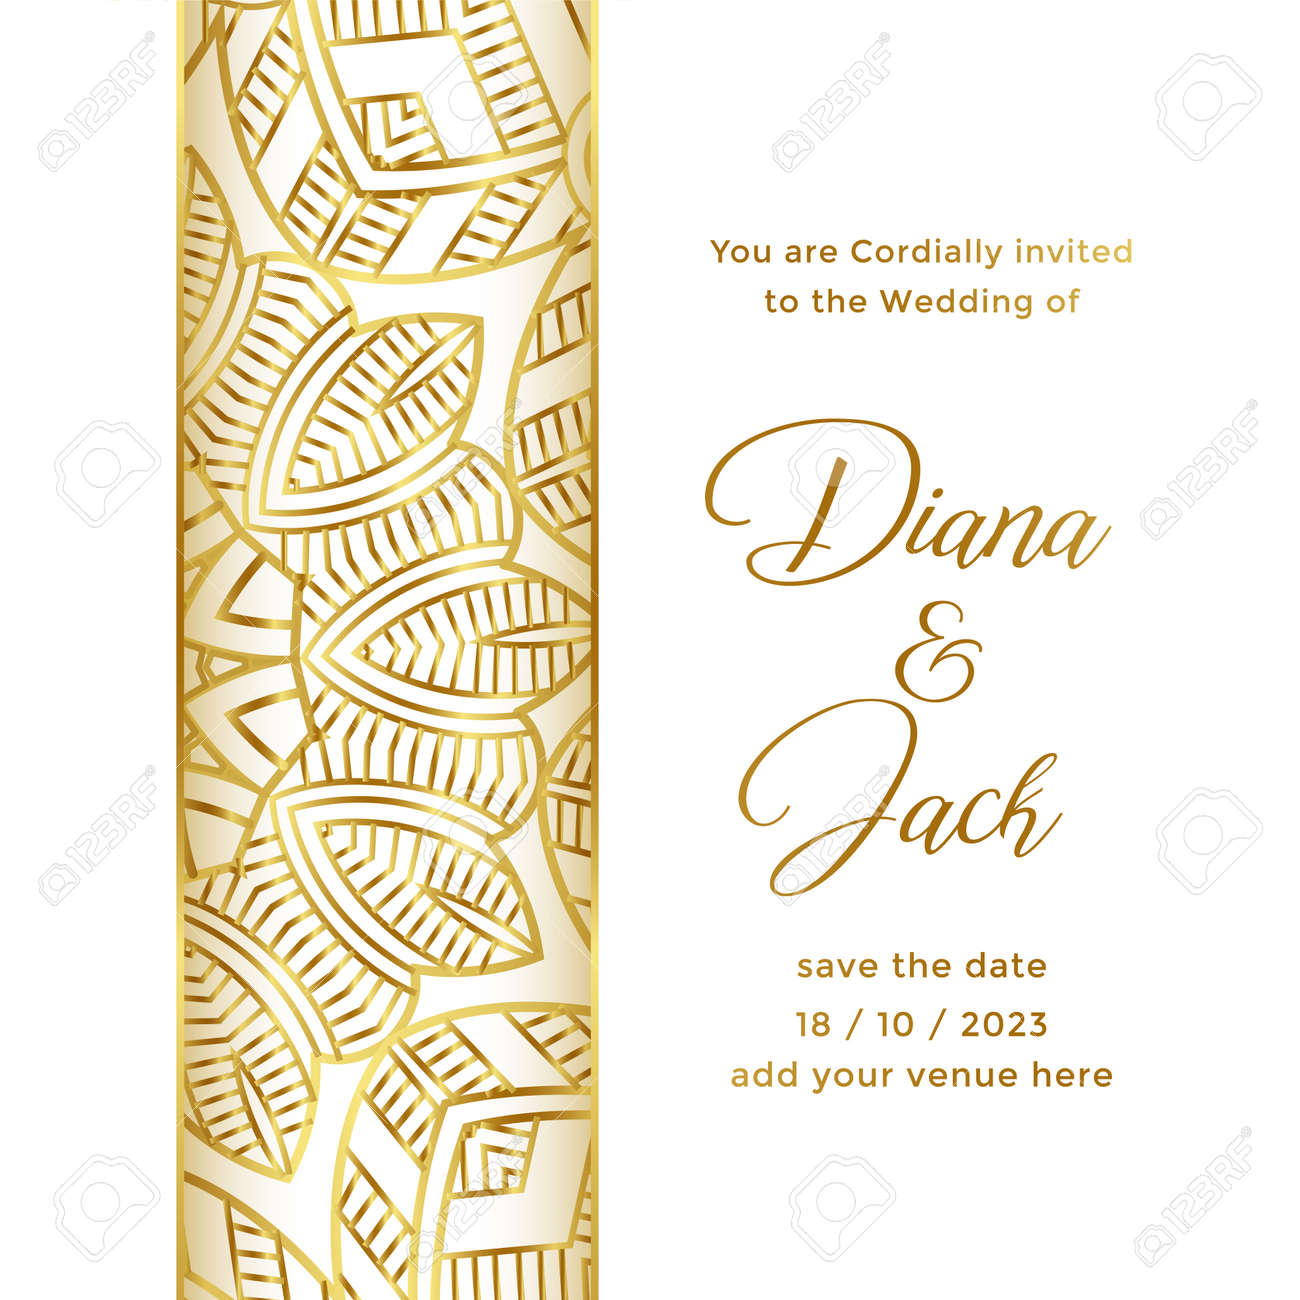 wedding card template with ornamental decorative style - 167909871